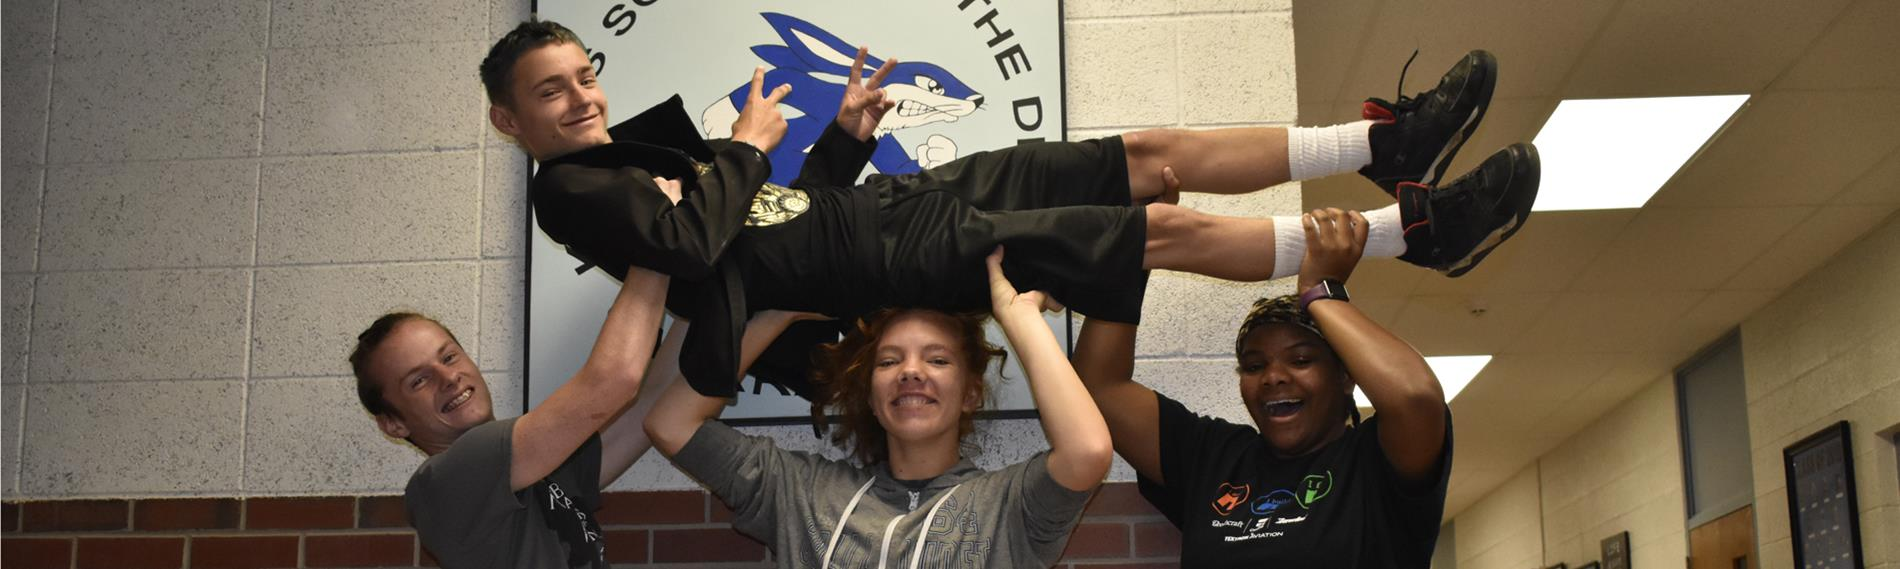 three students holding one student up in the air